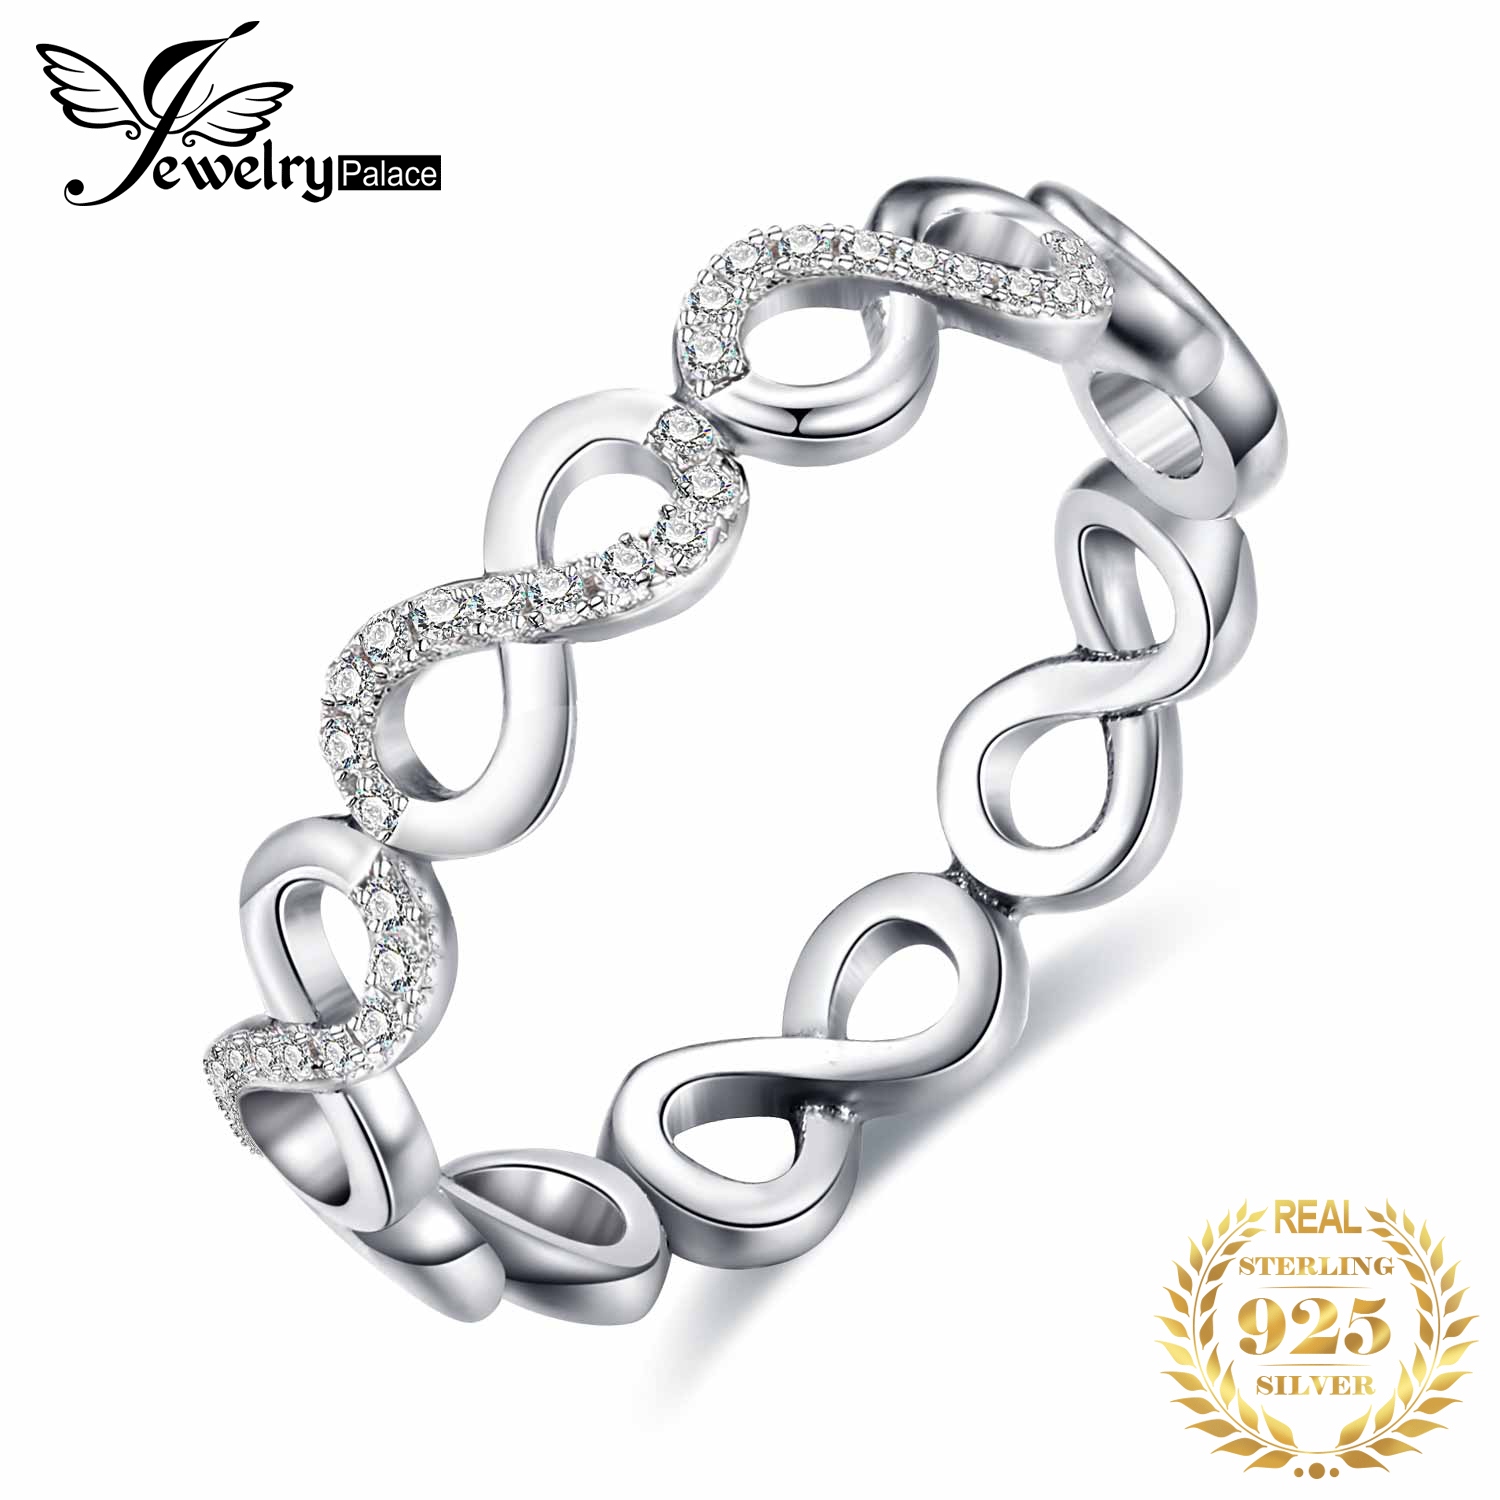 Jewelrypalace 925 Sterling Silver Love Infinity Stacking Ring For Women Best Gifts New Hot Sale As Beatiuful Jewelry